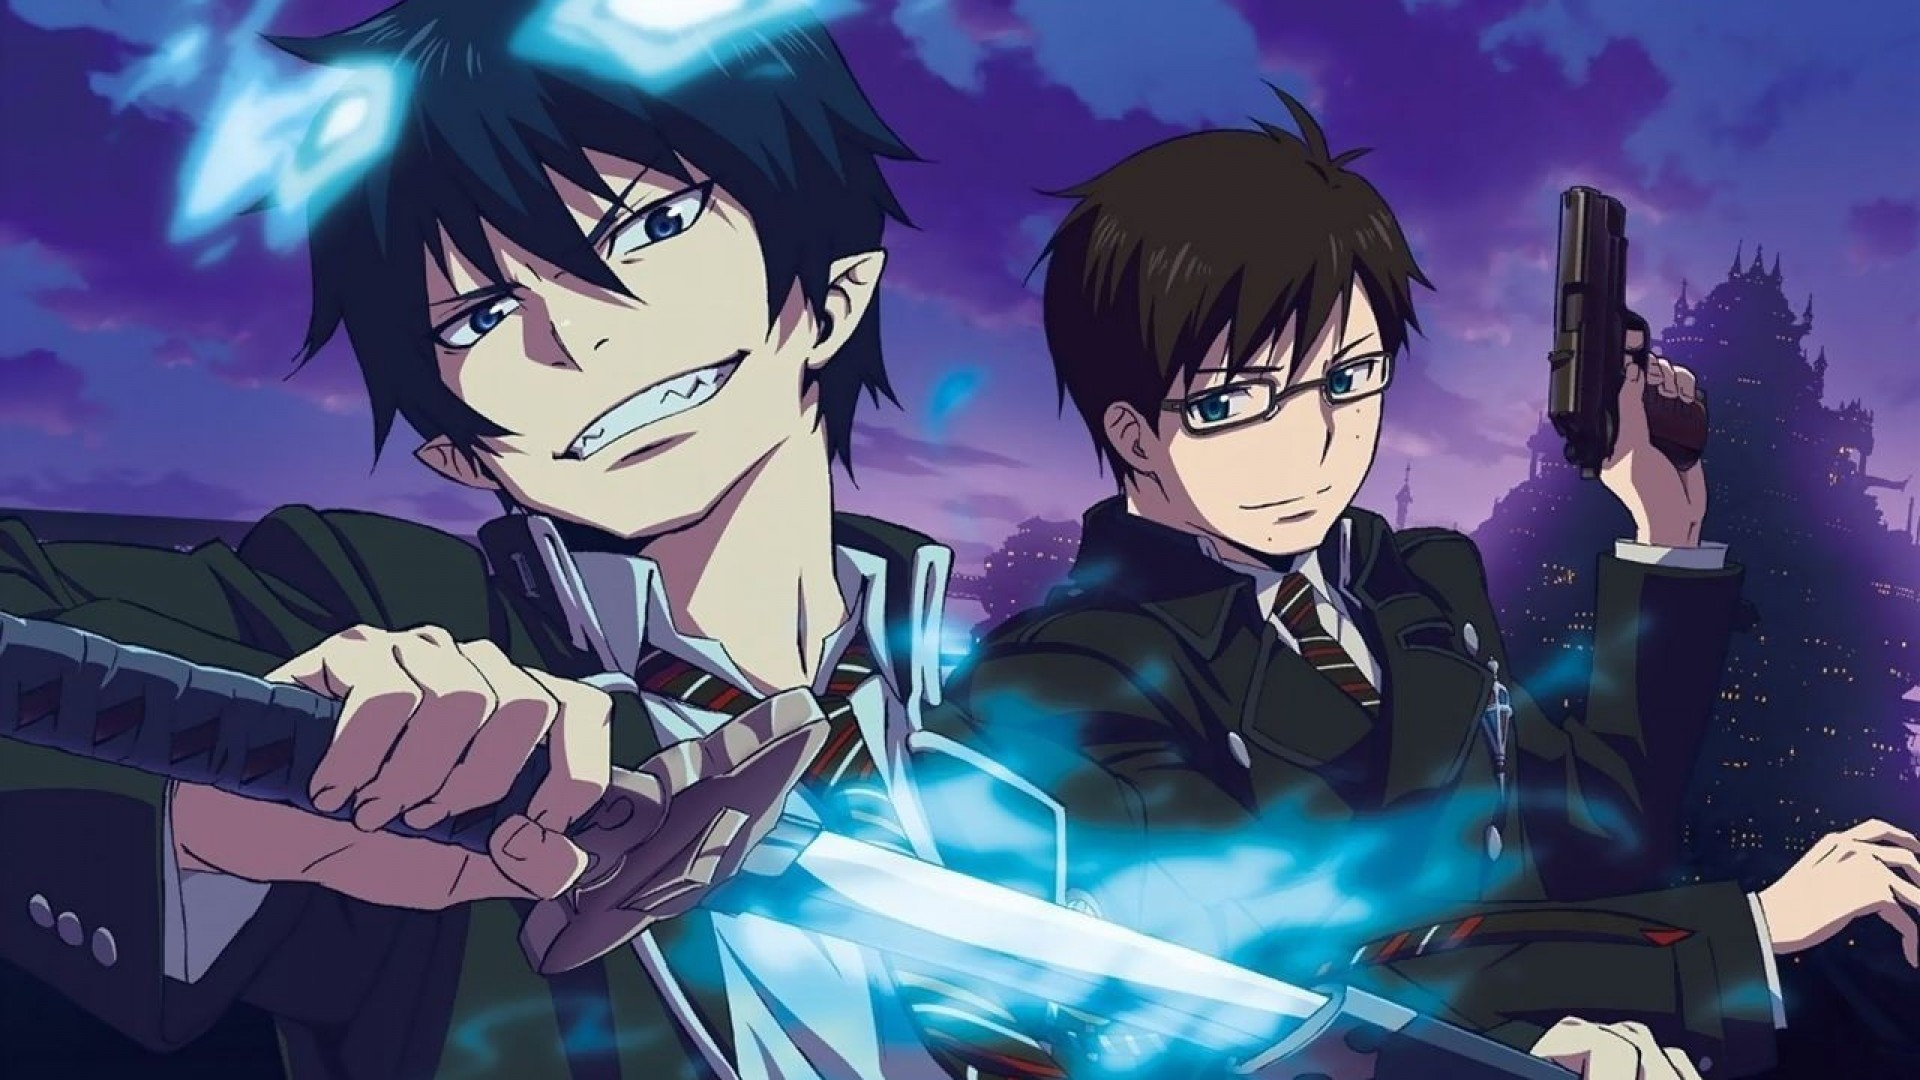 38 Blue Exorcist Wallpaper Hd On Wallpapersafari